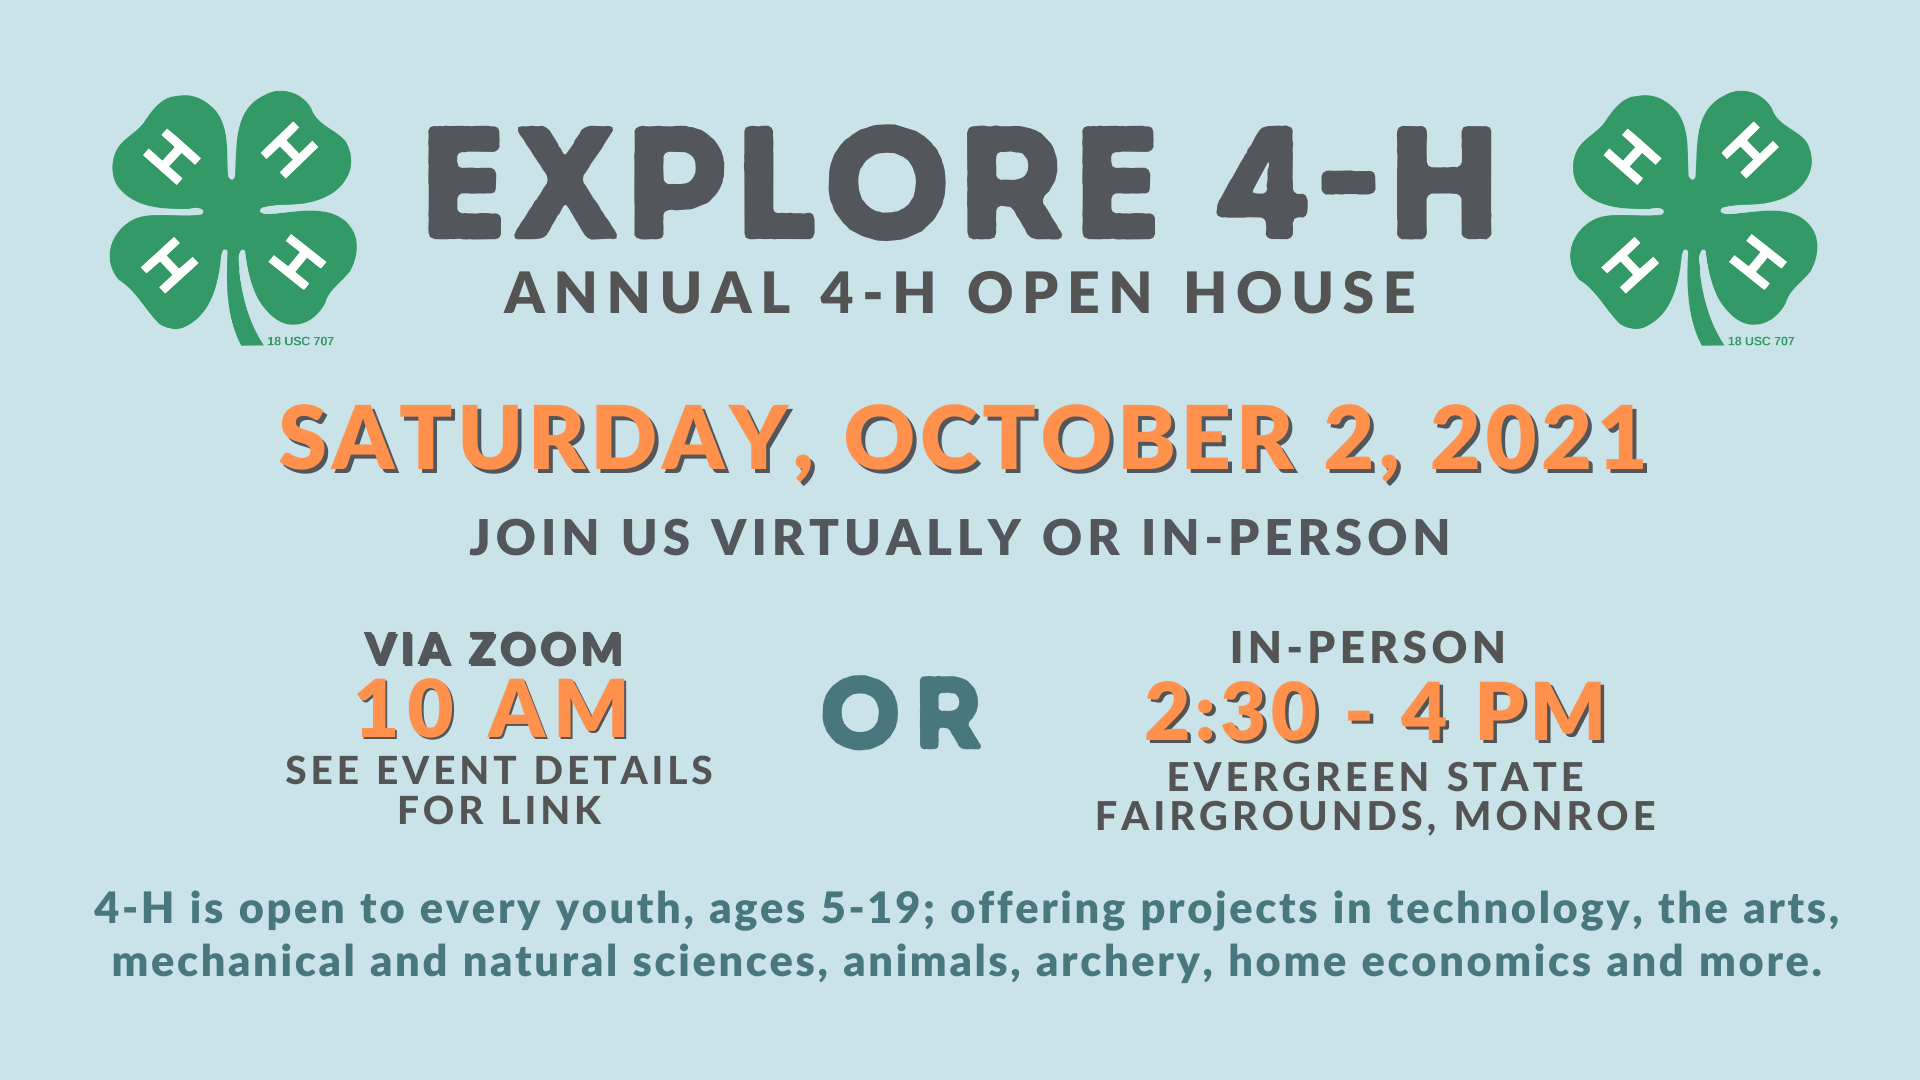 Graphic describing 4-H open house opportunities; image is also a link to the virtual open house on October 2nd.